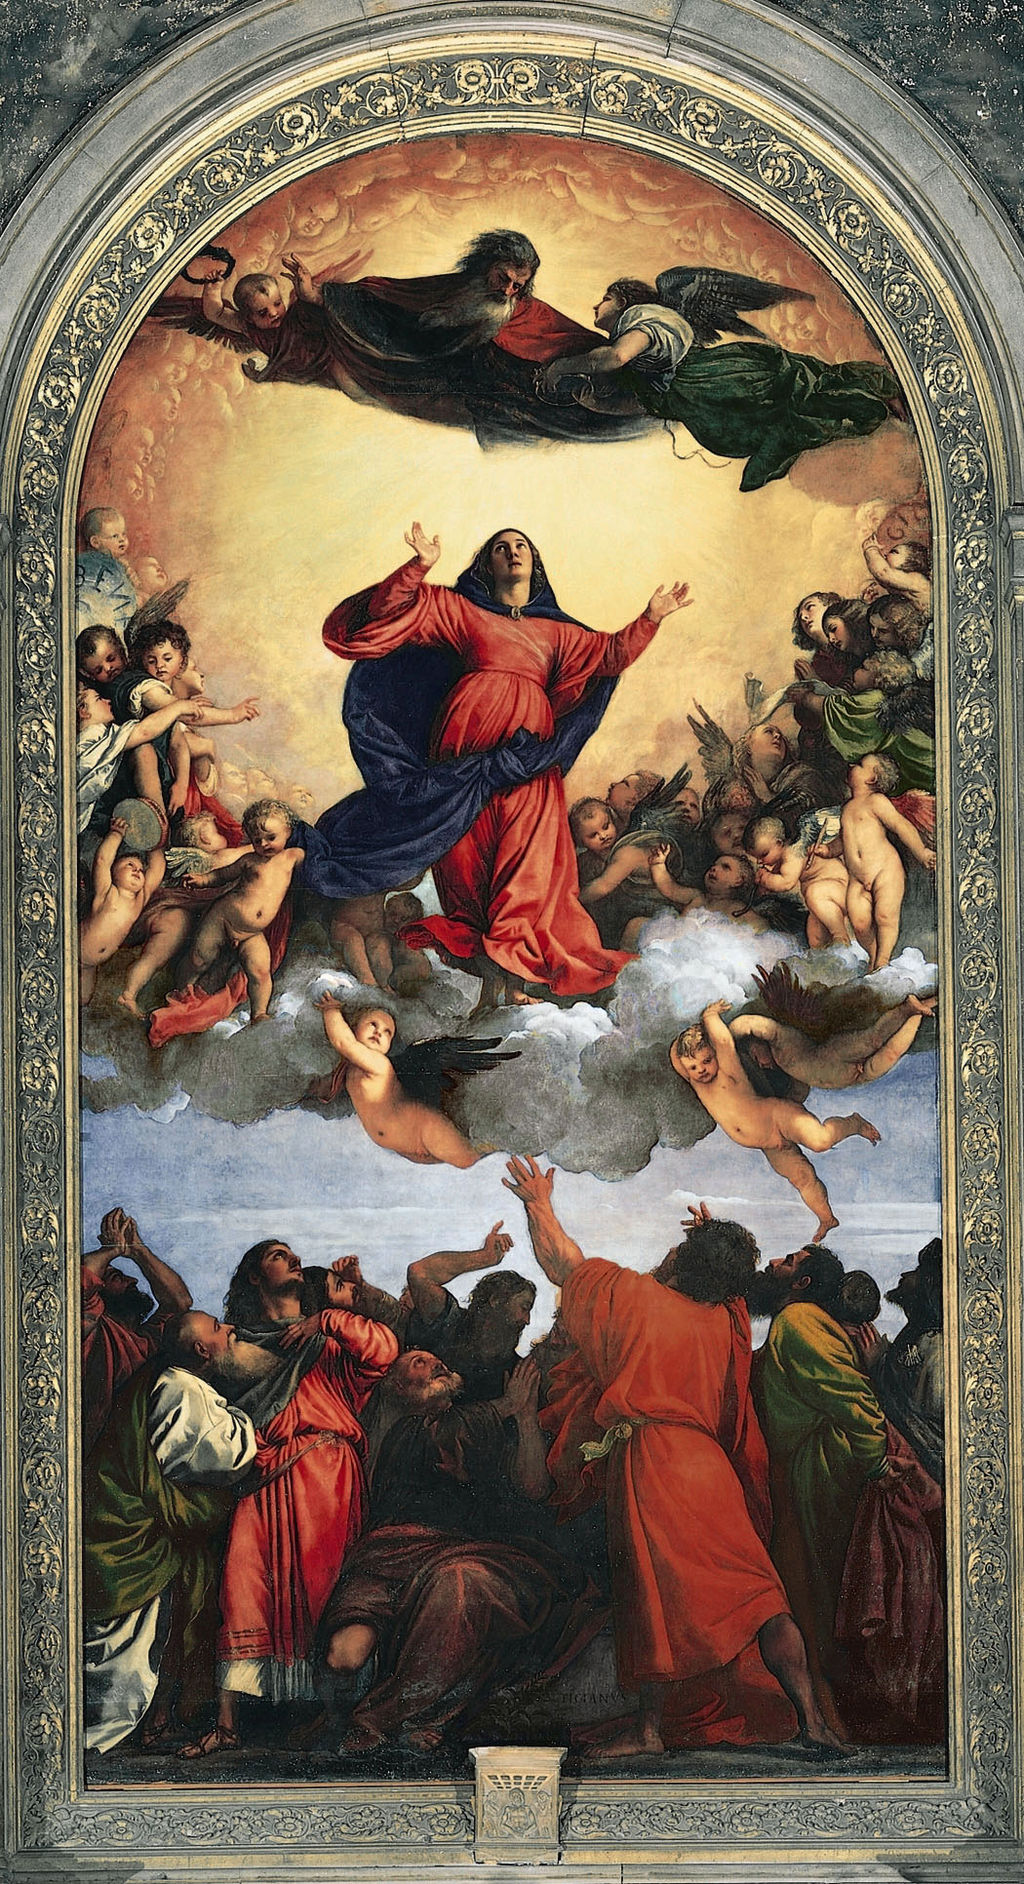 Image: Titian's Assumption of the Virgin with vermilion accents. Credit: Titian [Public domain...